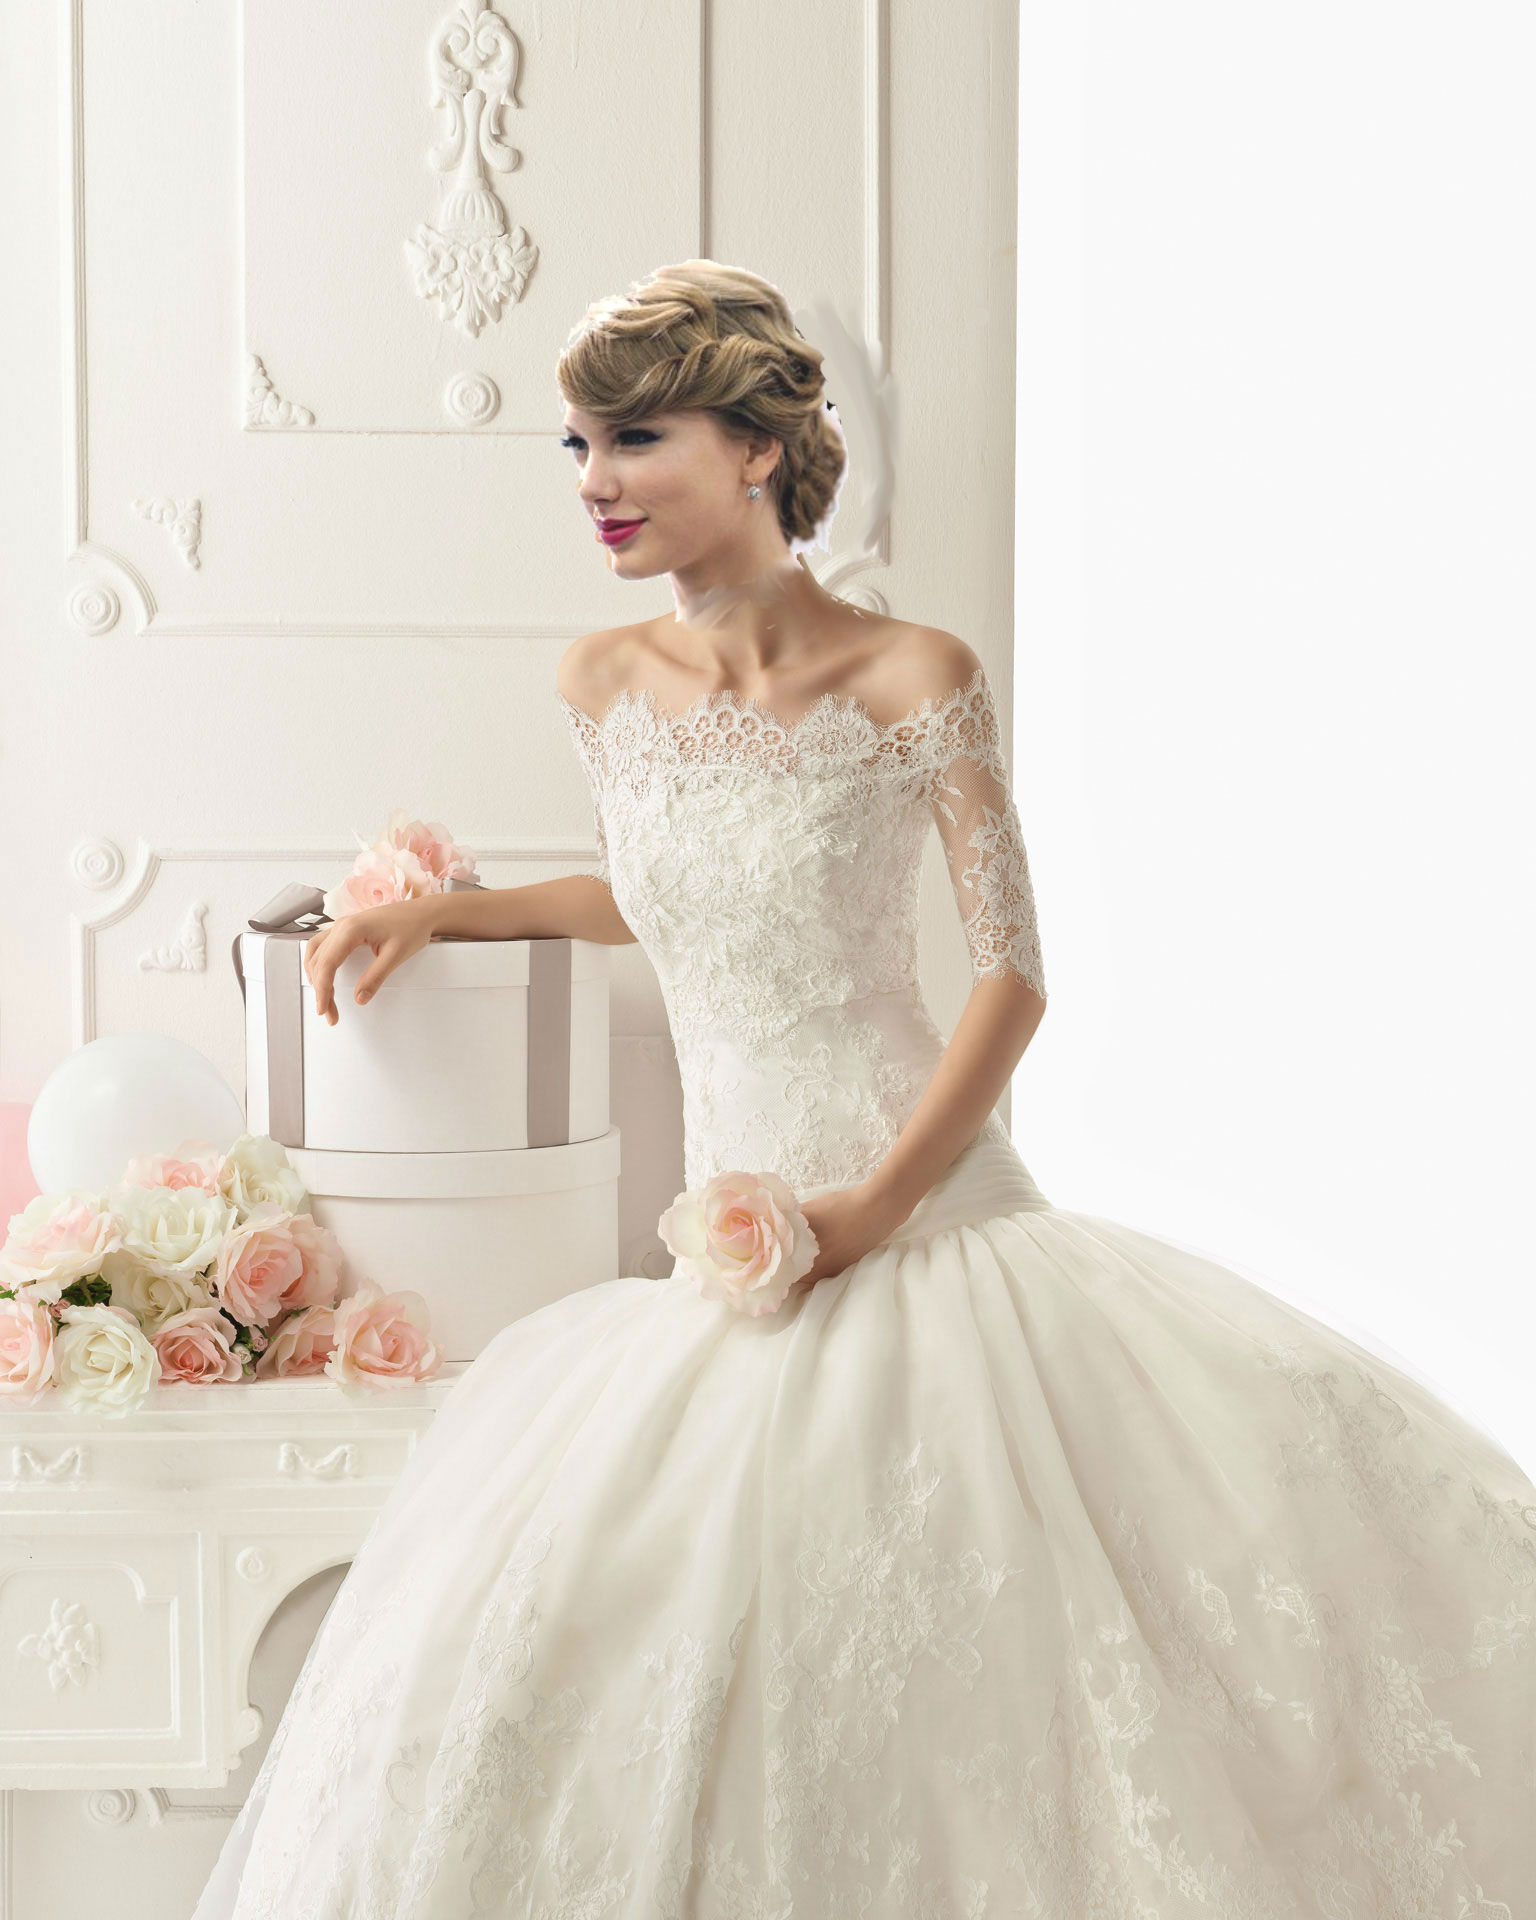 Taylor Swift S Secret Wedding Exclusive Look Here The Dial